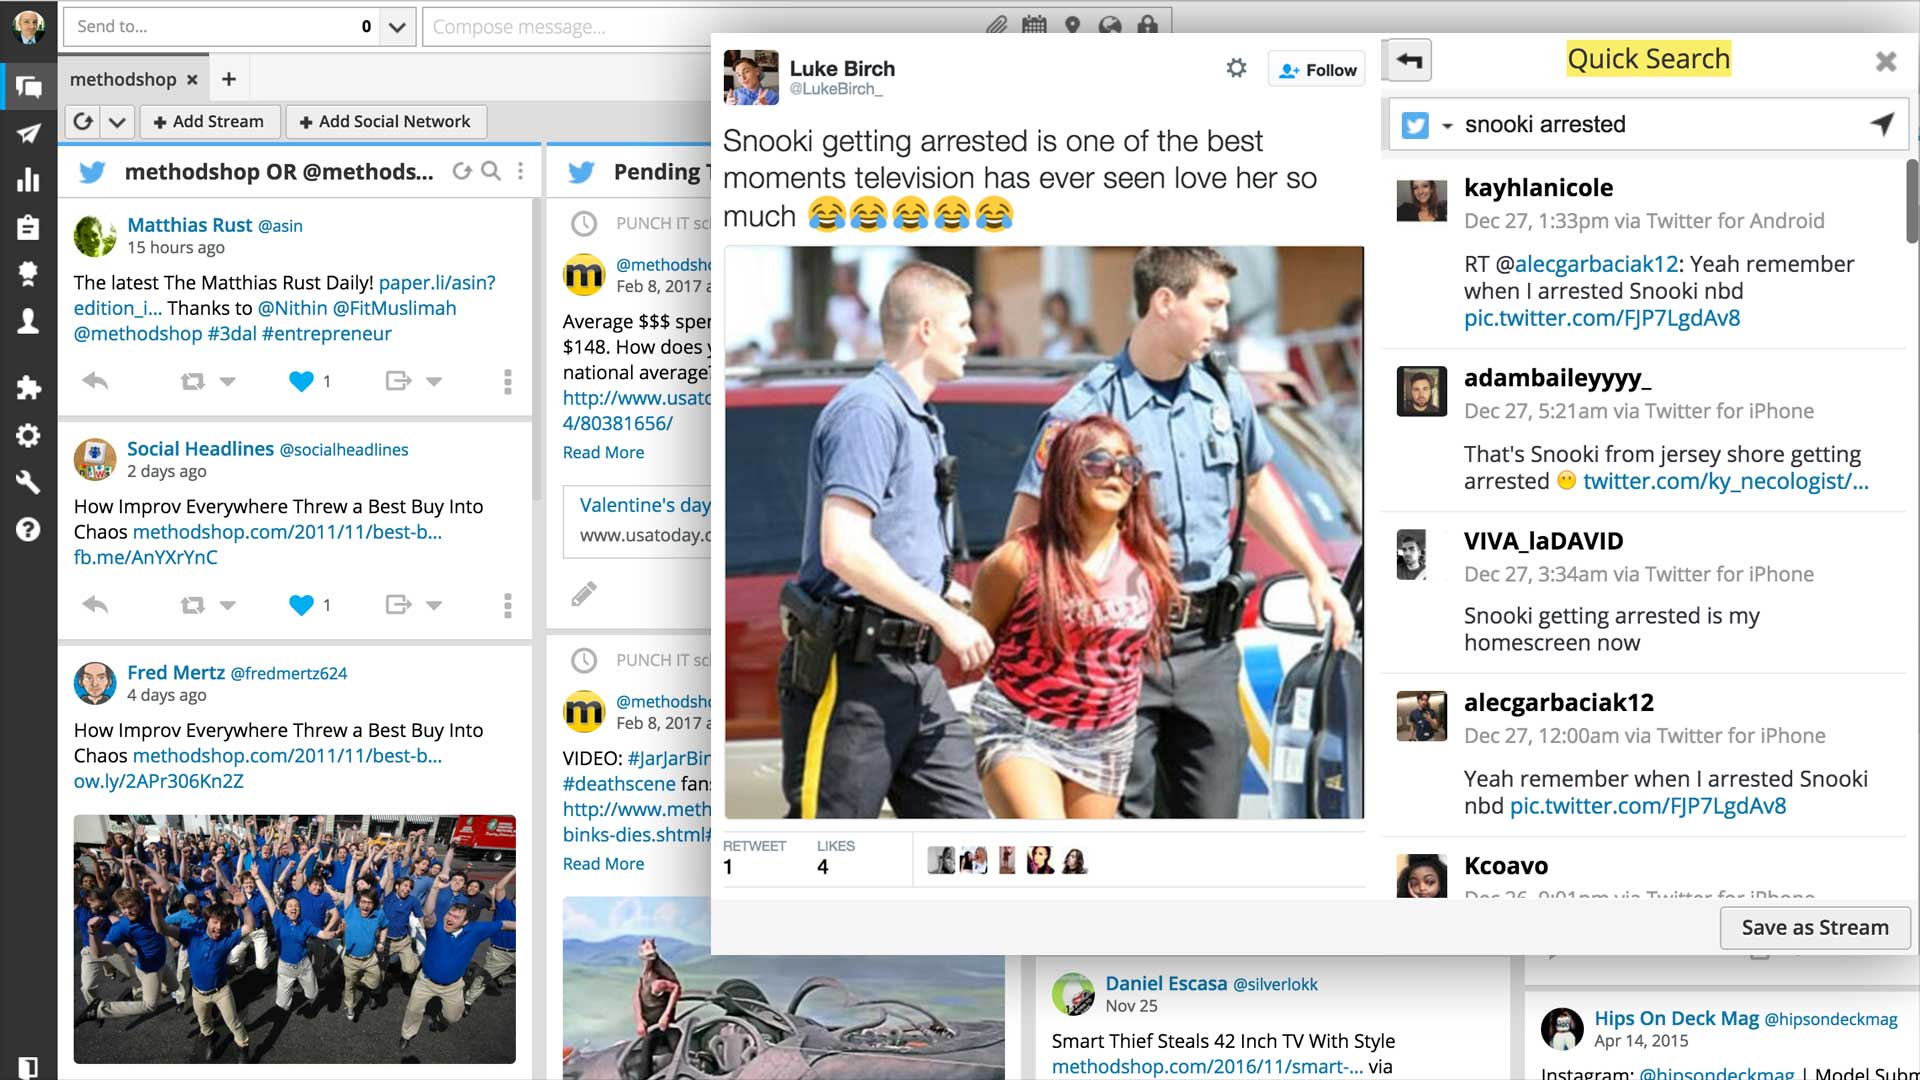 Snooki Arrested: Hootsuite Search